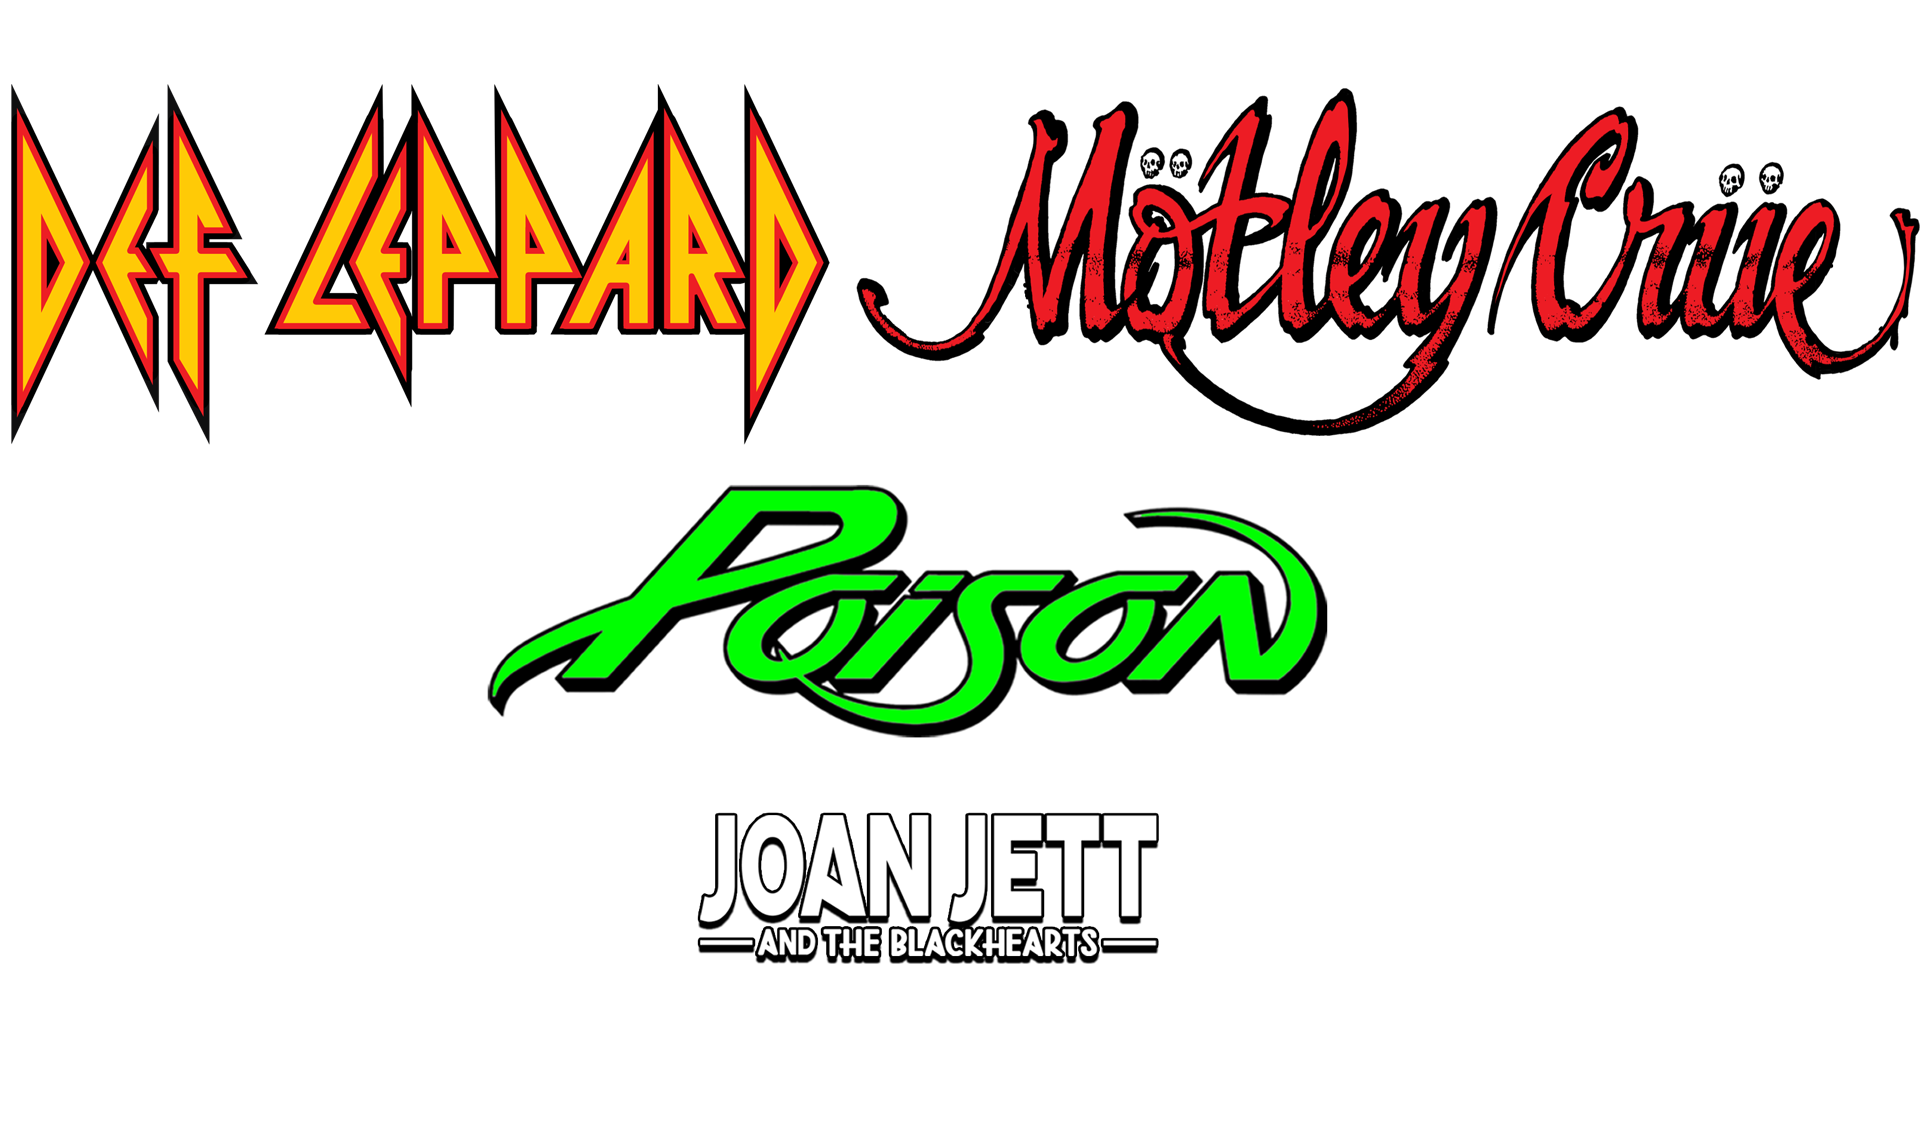 The Stadium Tour - Def Leppard - Motley Crue - Poison - Joan Jett and the Blackhearts